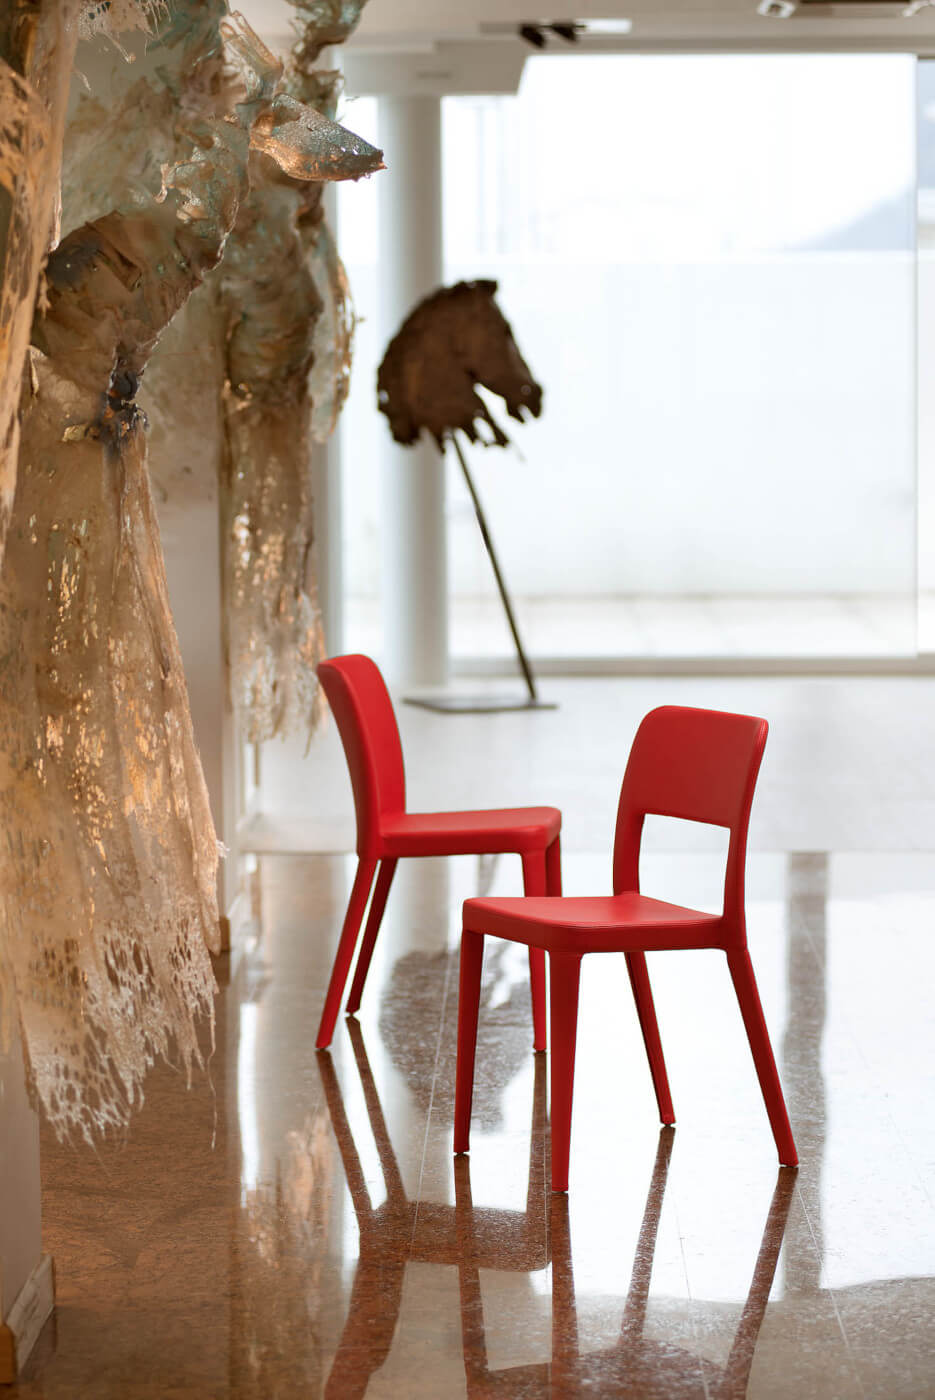 Nenè chair entirely made of red polypropylene